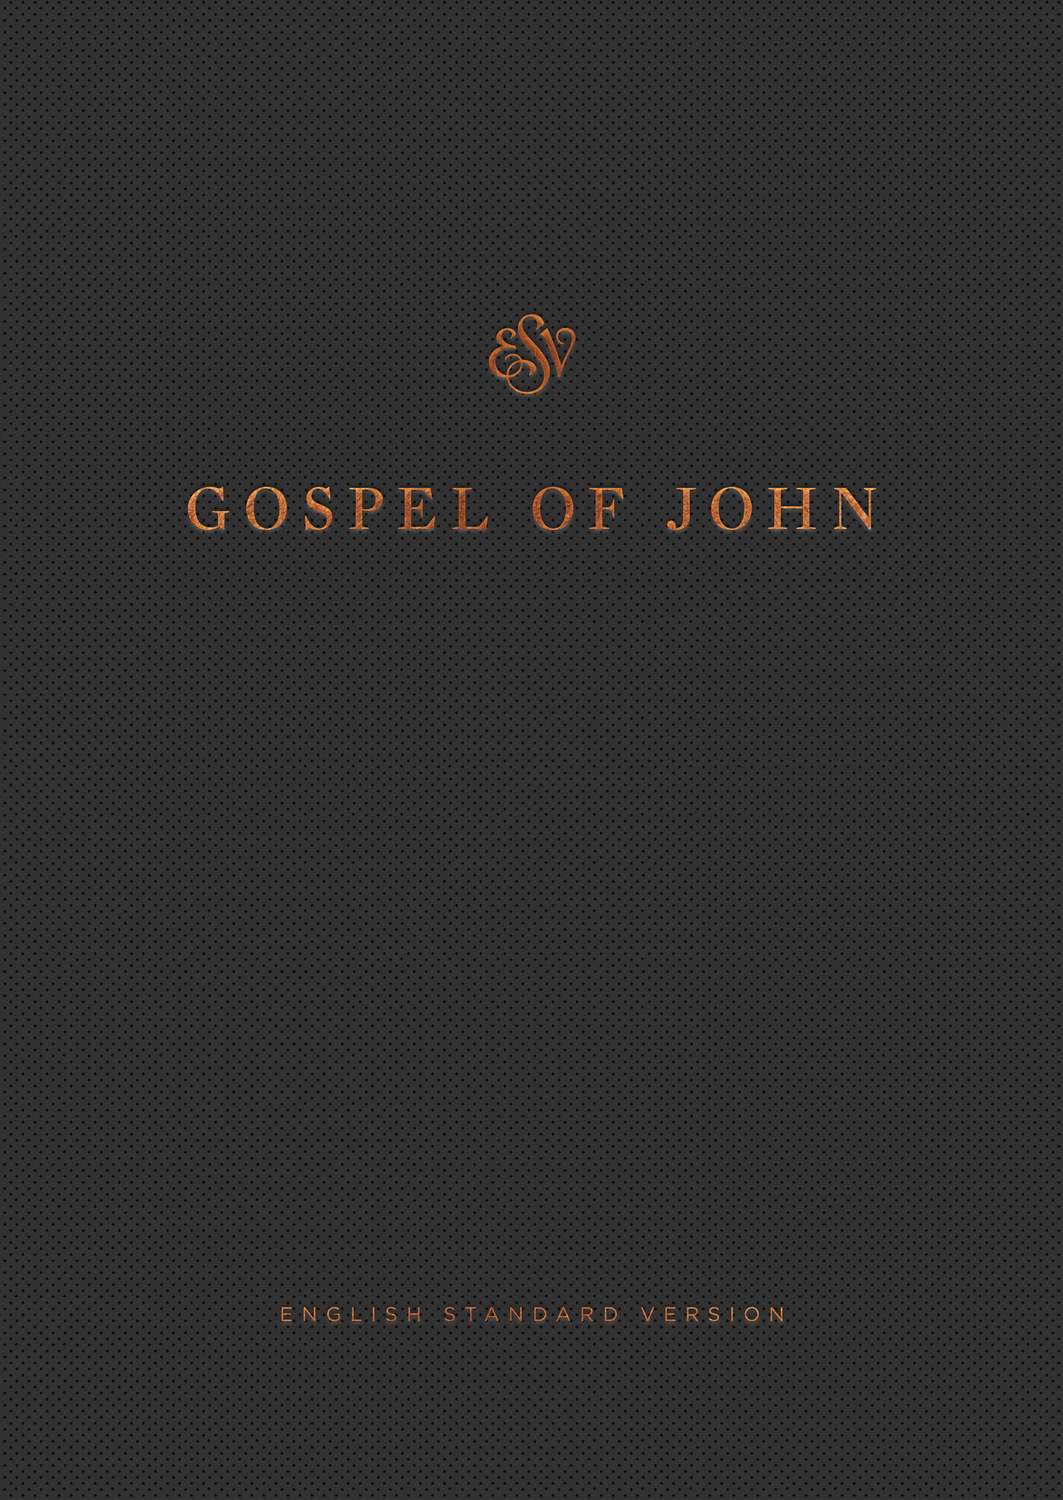 ESV Gospel of John, Reader's Edition